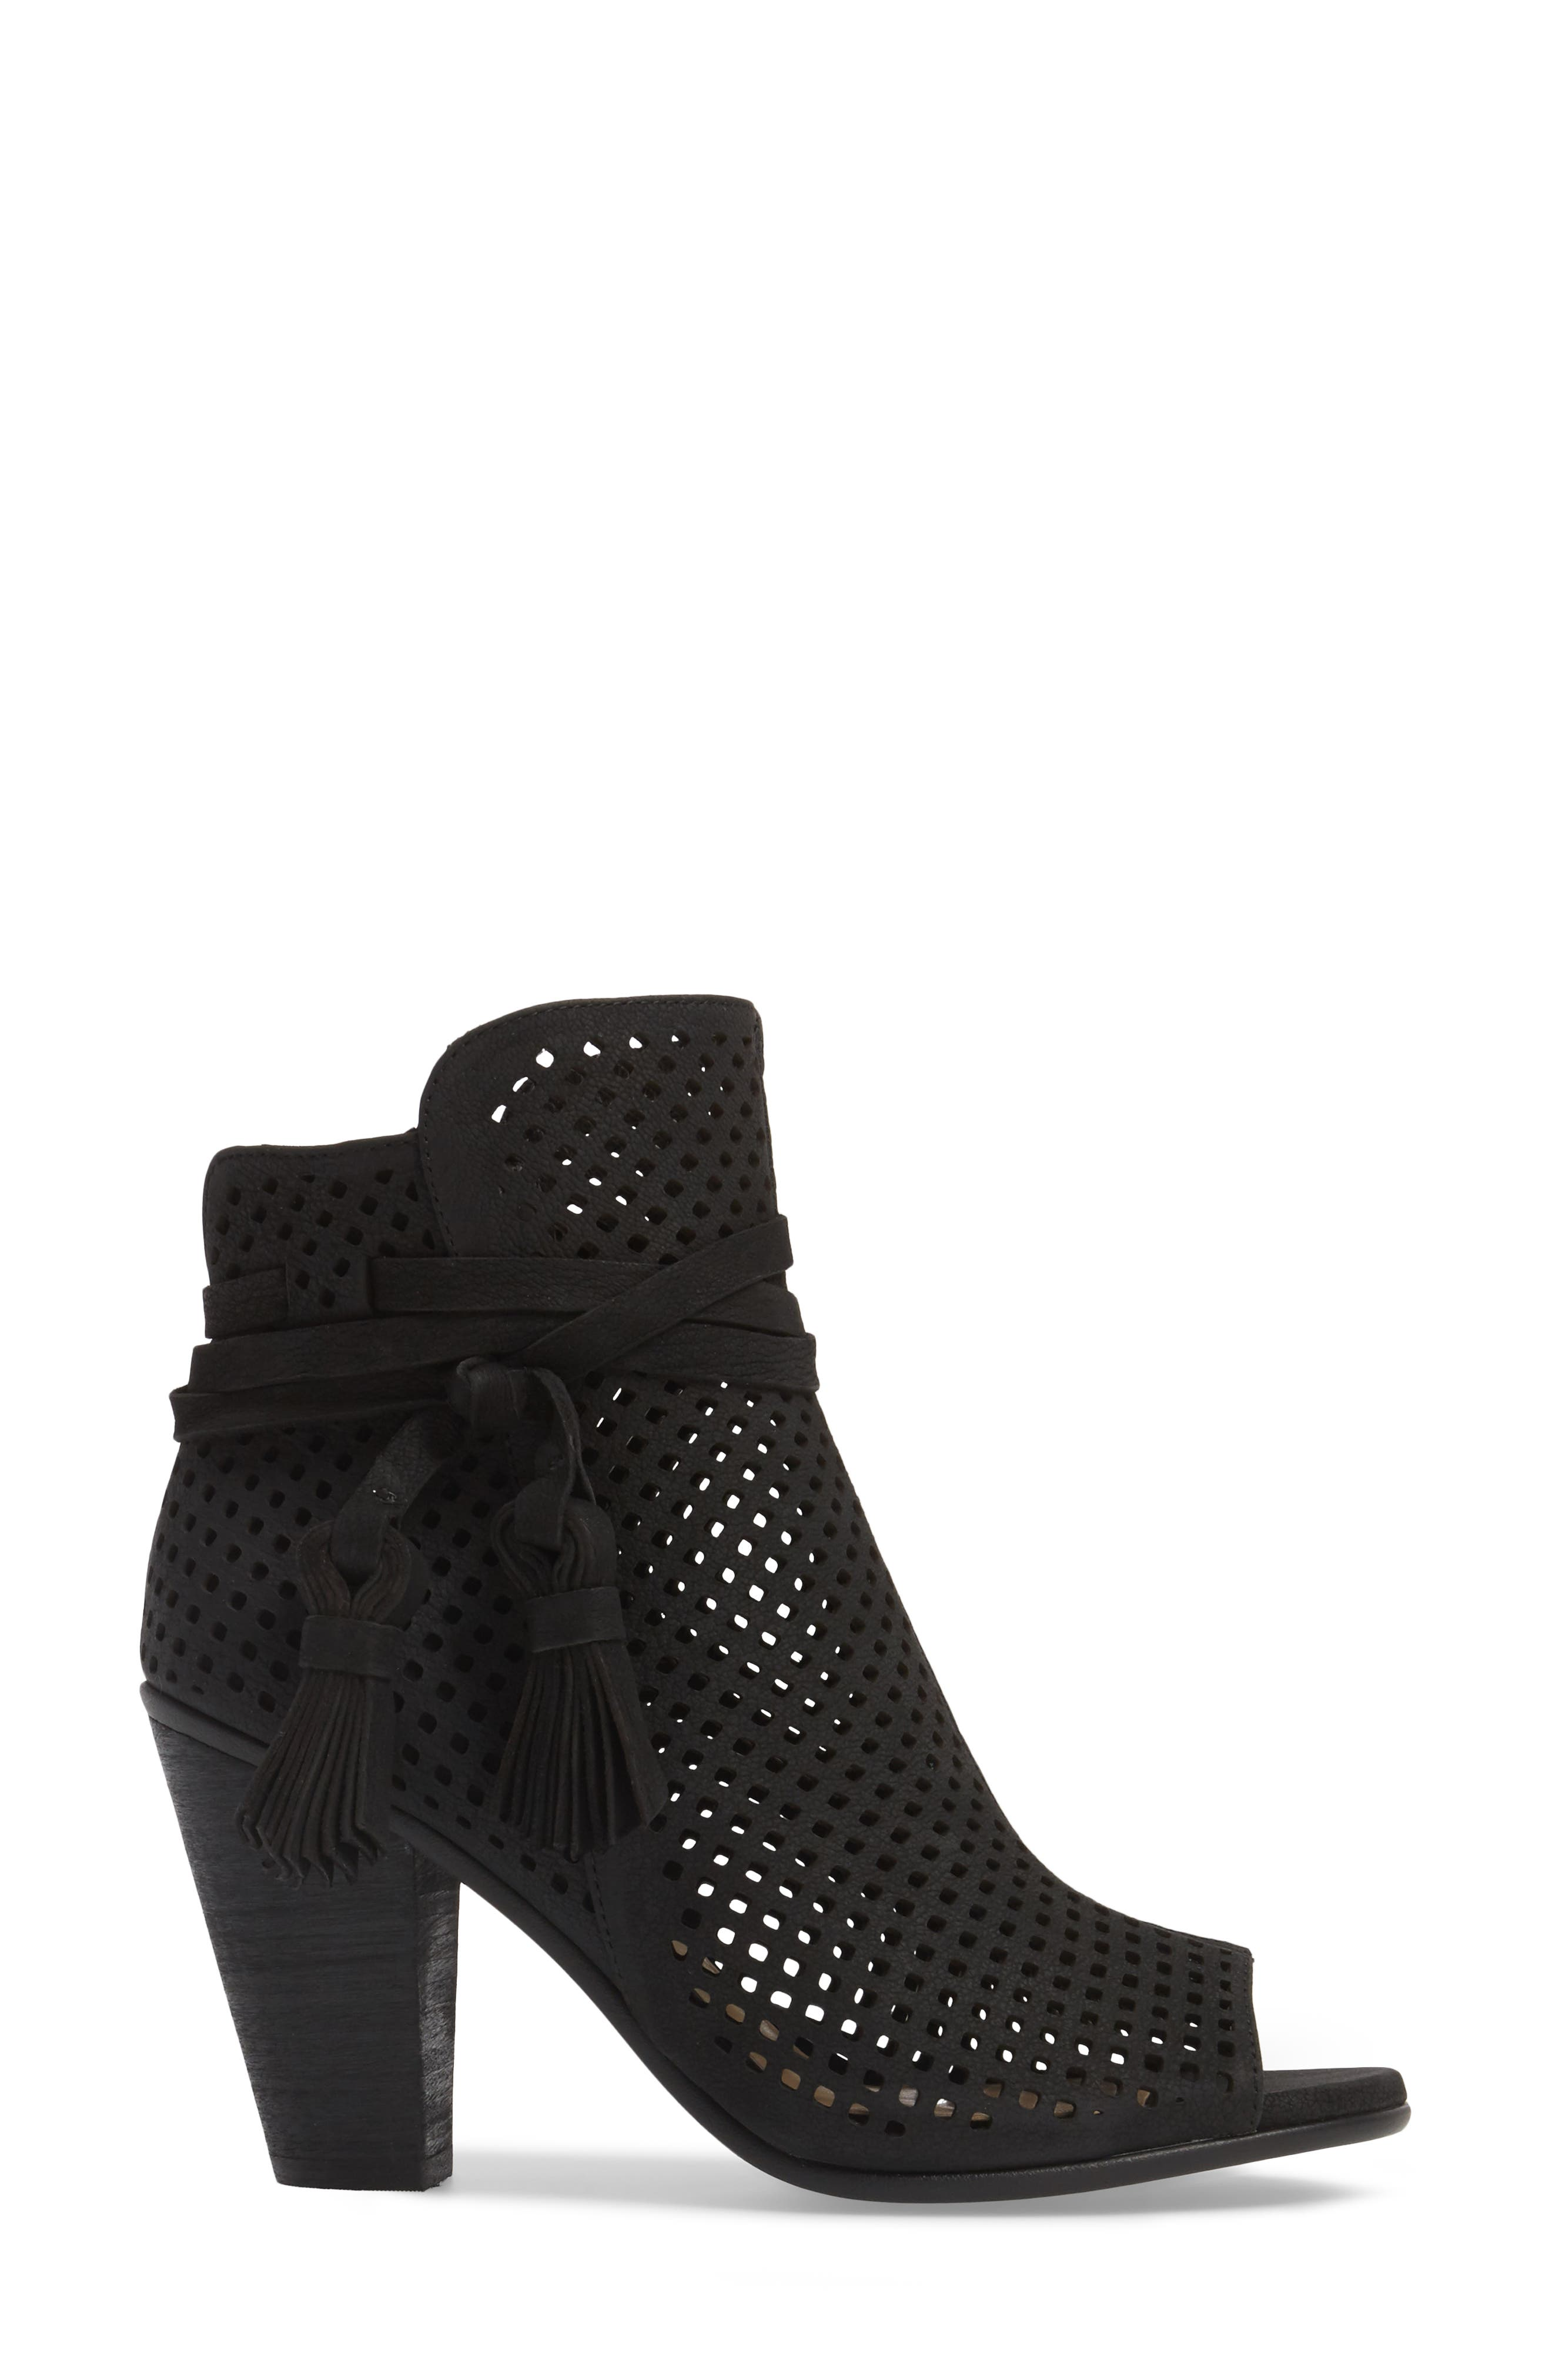 Kamey Perforated Open Toe Bootie,                             Alternate thumbnail 3, color,                             001